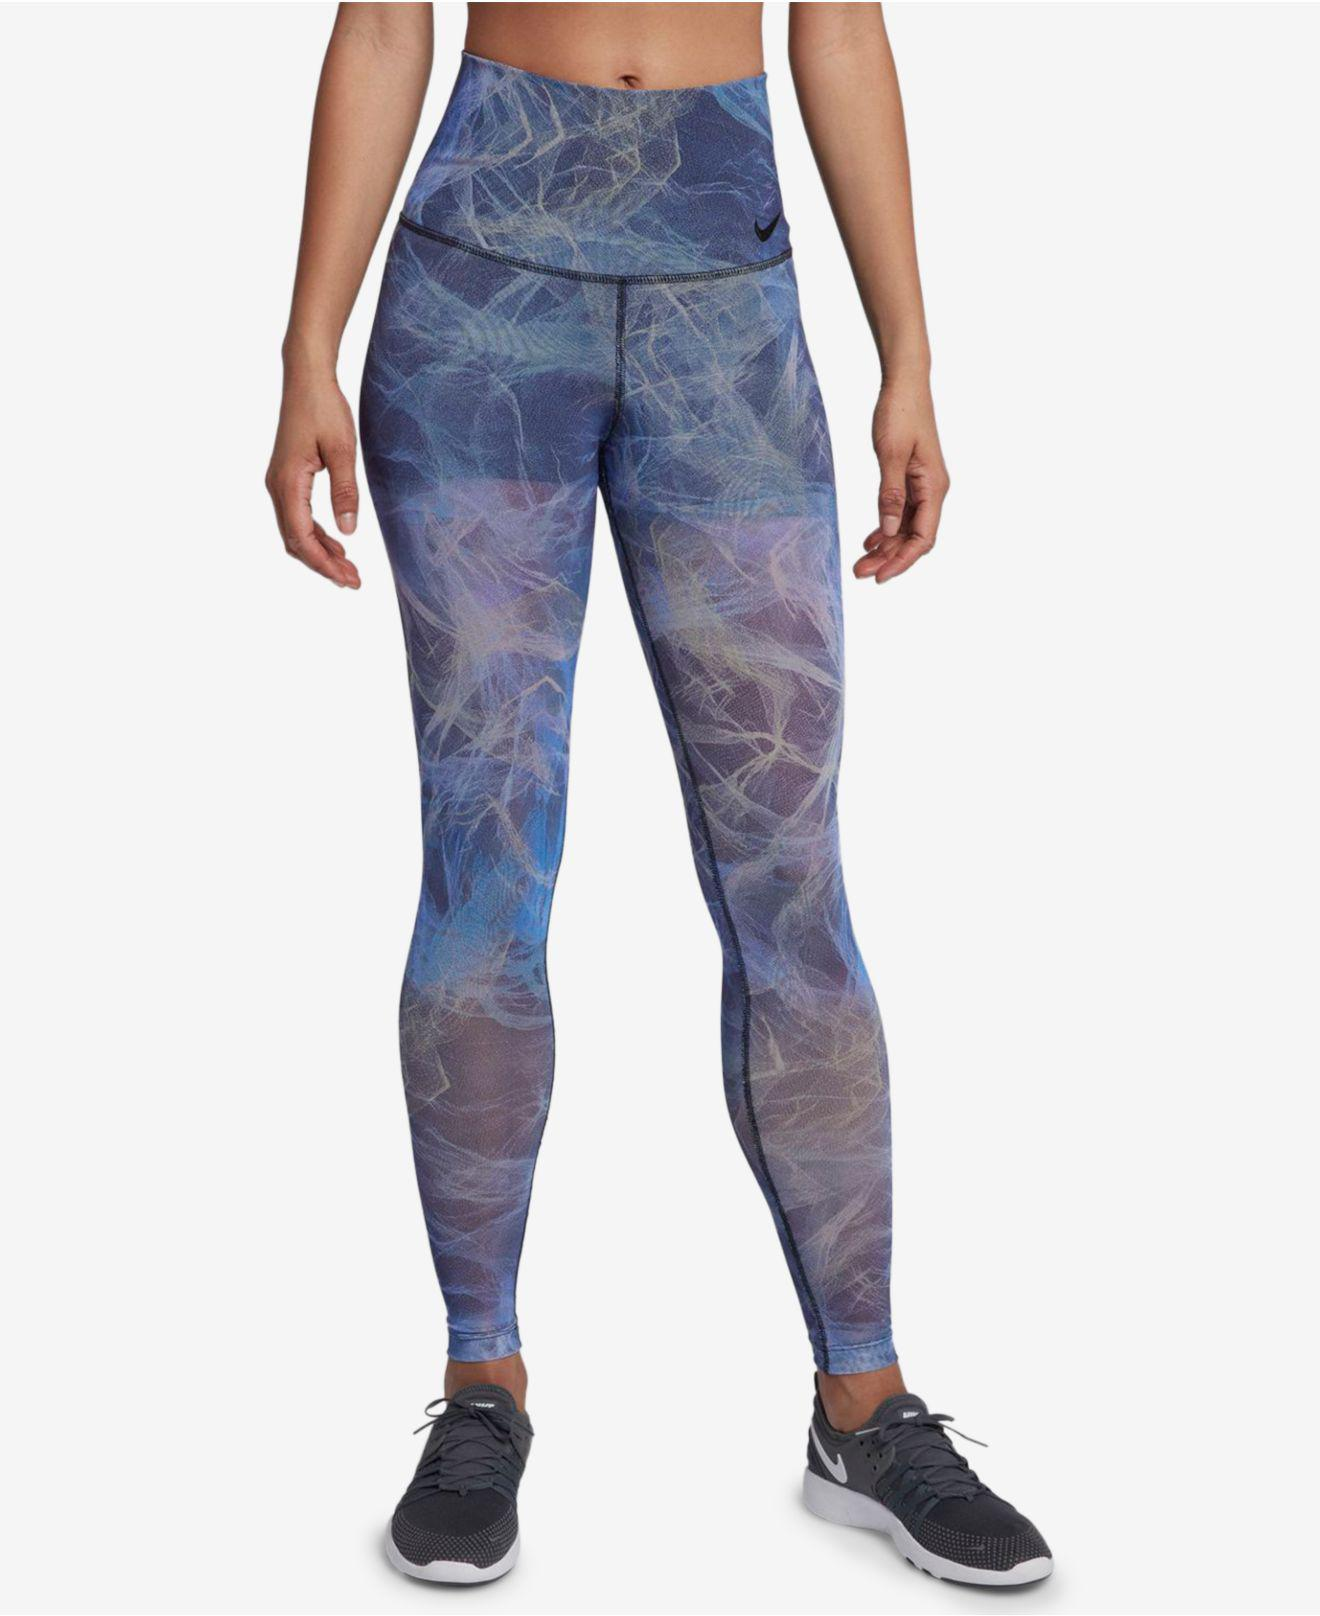 700a41e0e2 Nike Power Printed Mesh-overlay Workout Leggings in Blue - Lyst